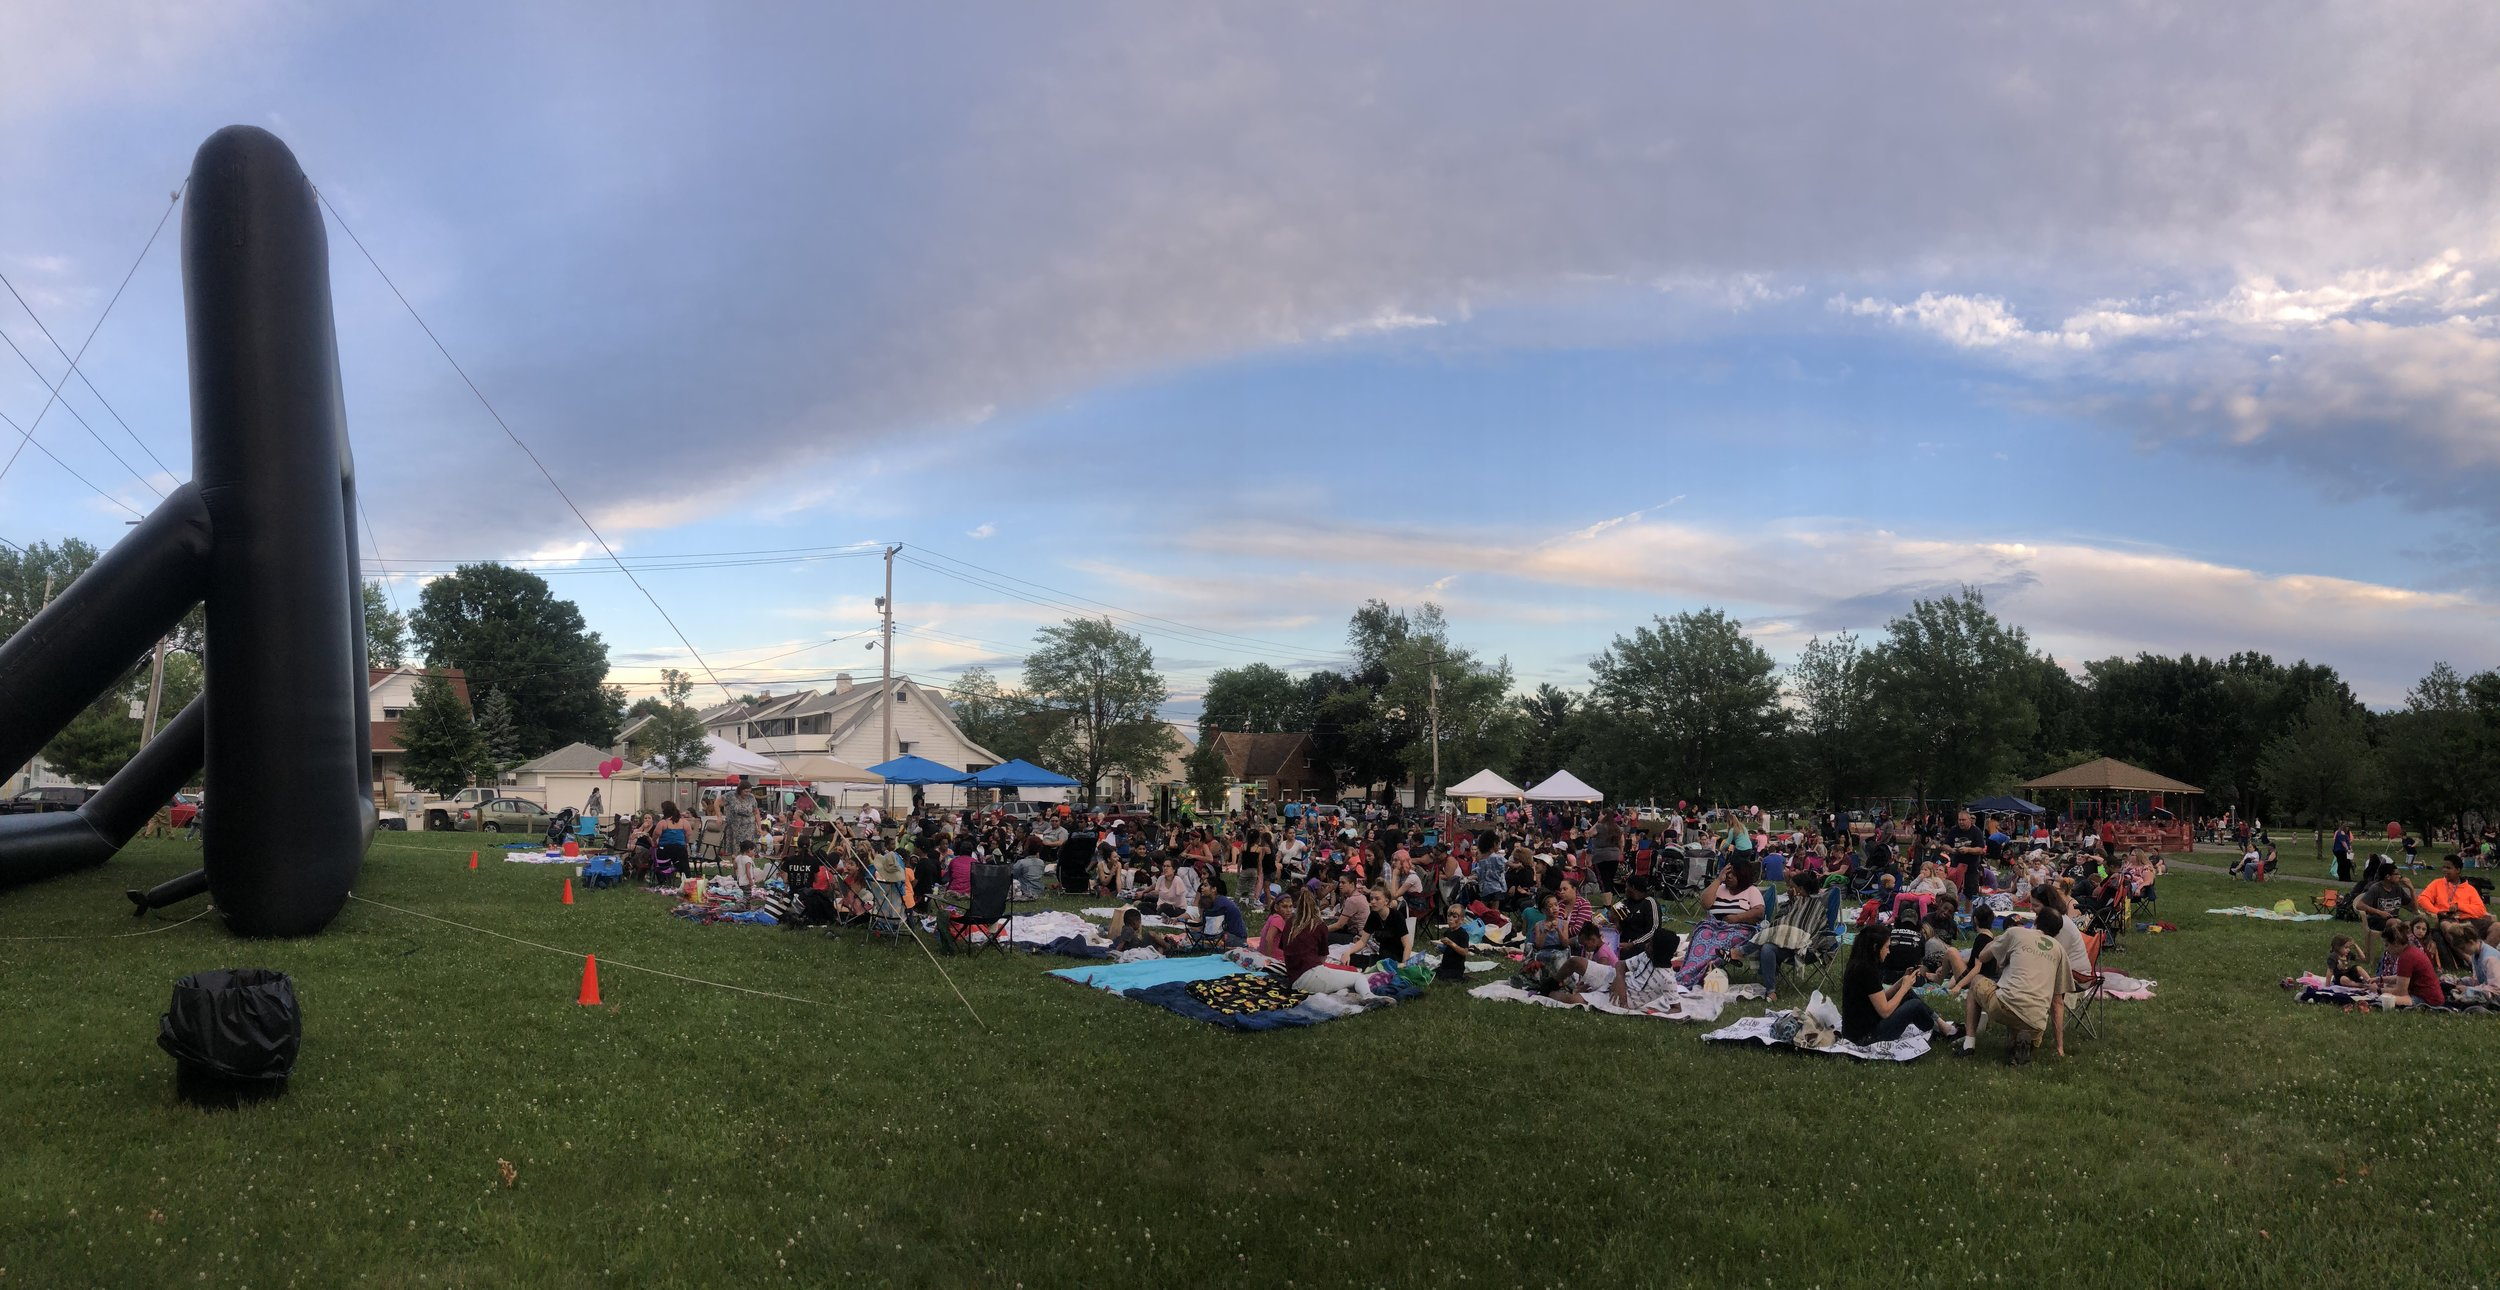 Cleveland Summer Cinema